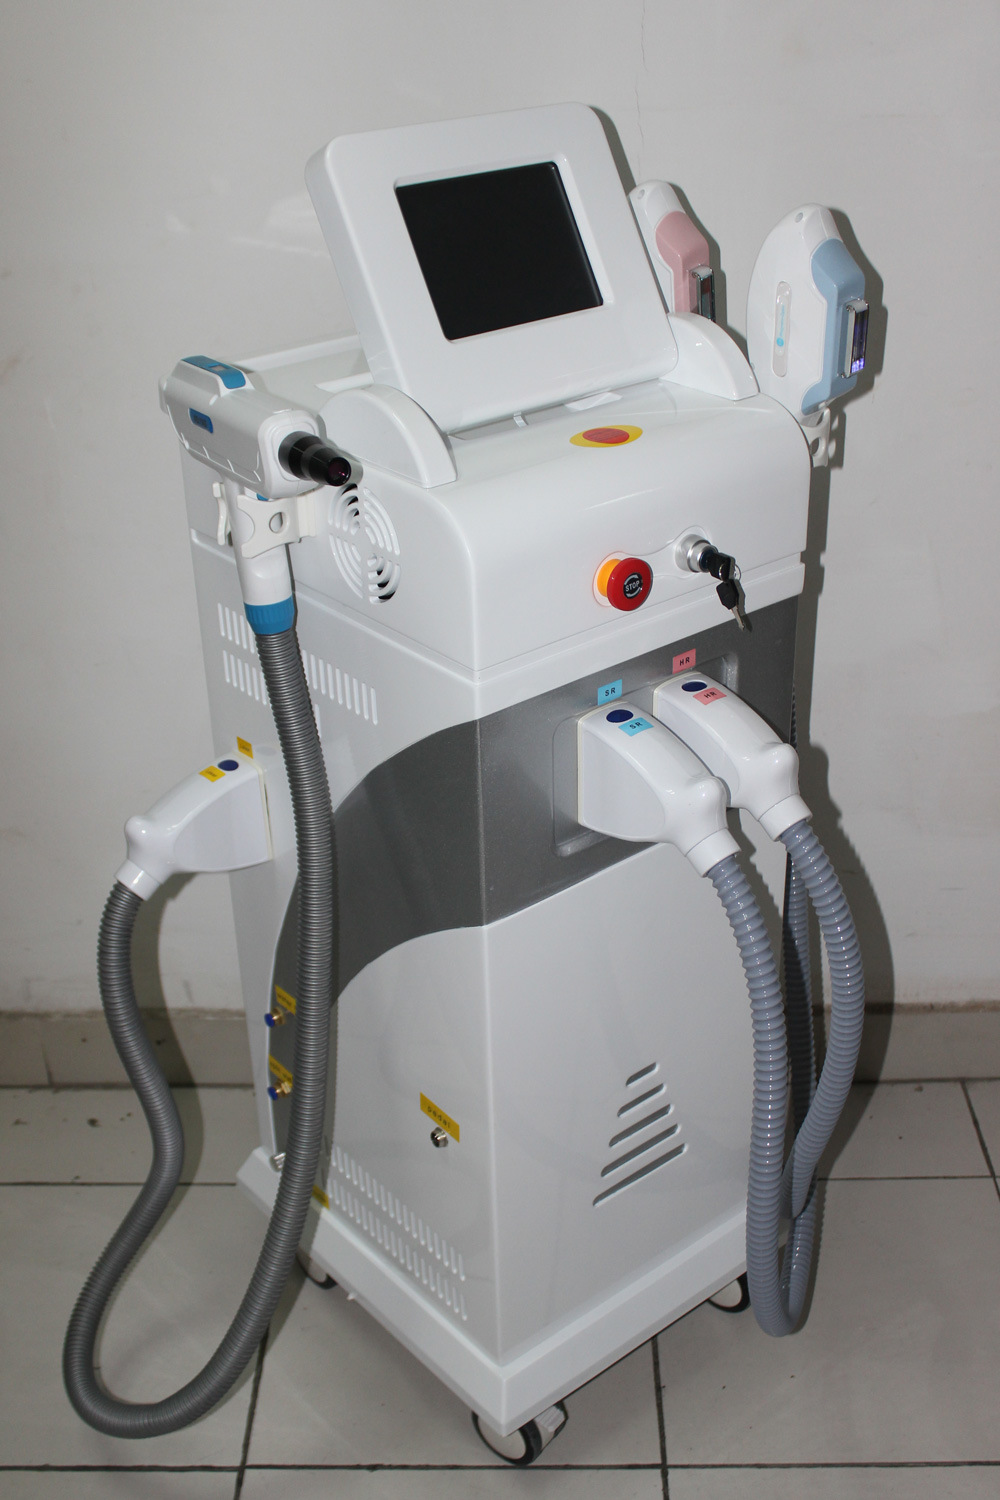 2018 Latest 4 in 1 Sr & Hr & RF & ND YAG Laser, Cheaper Hair Removal Laser Machine Prices (MSLOL02)